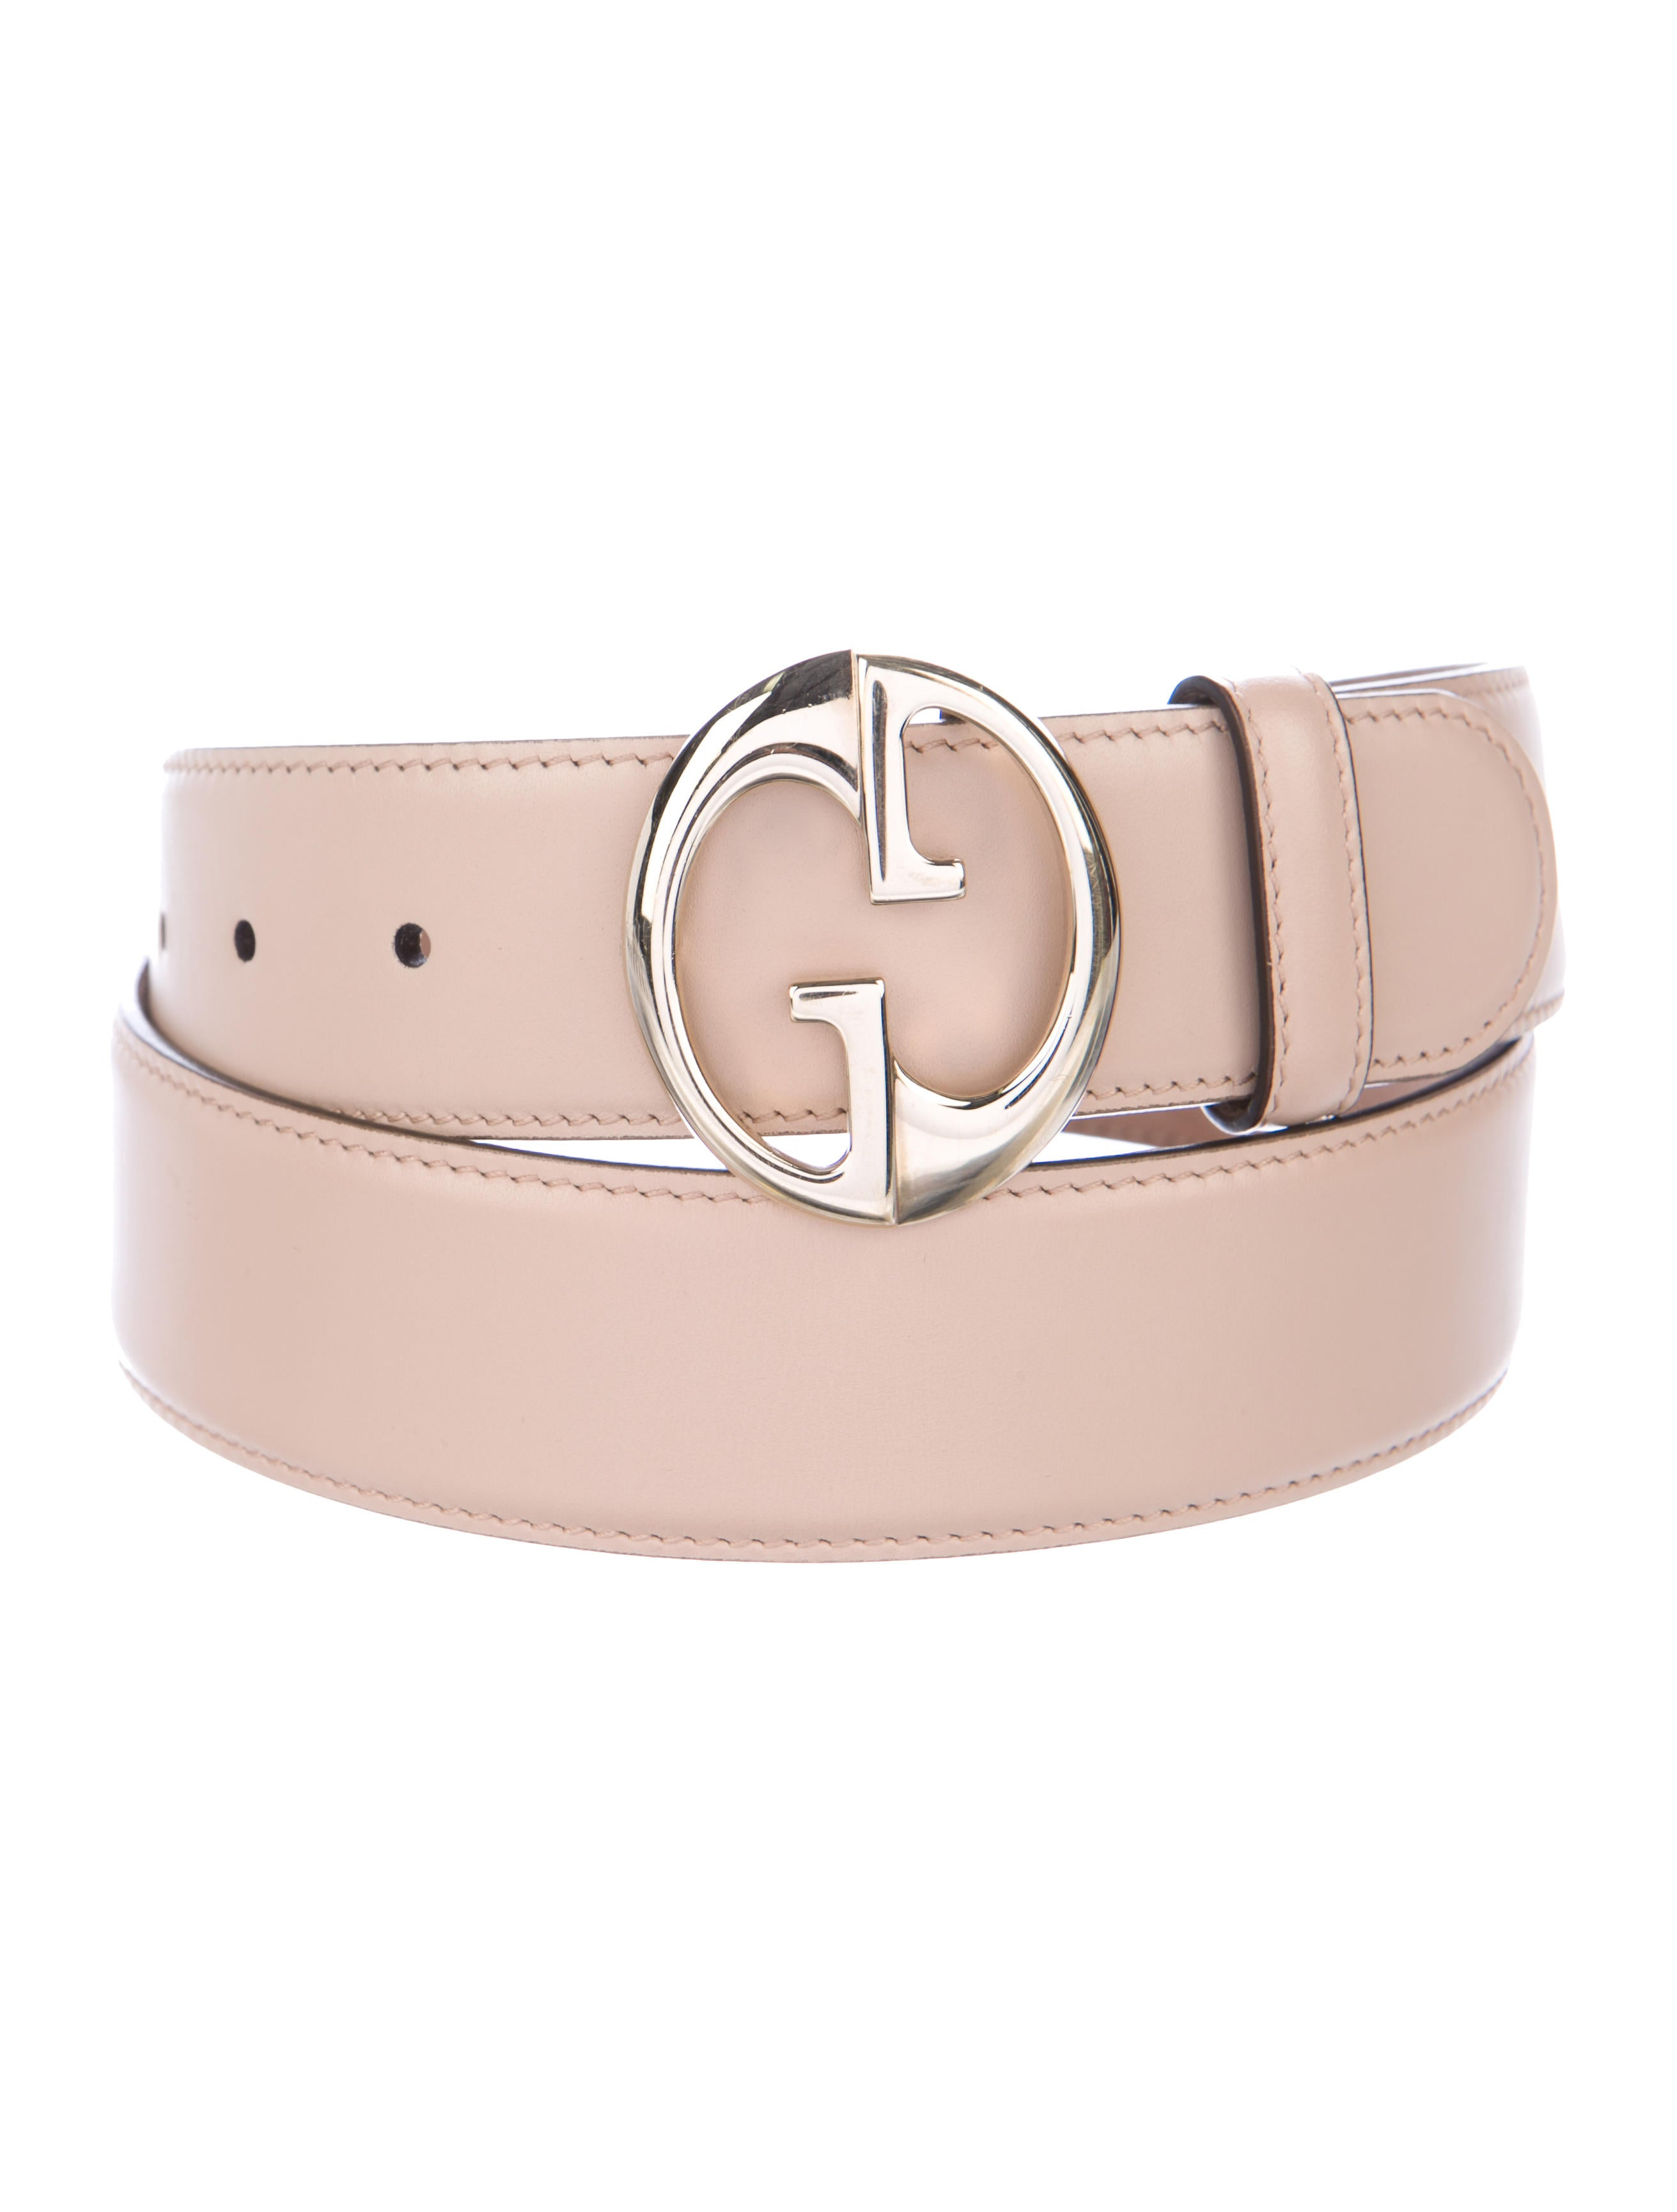 Gucci Leather Logo Buckle Belt - Accessories - GUC194323 | The RealReal